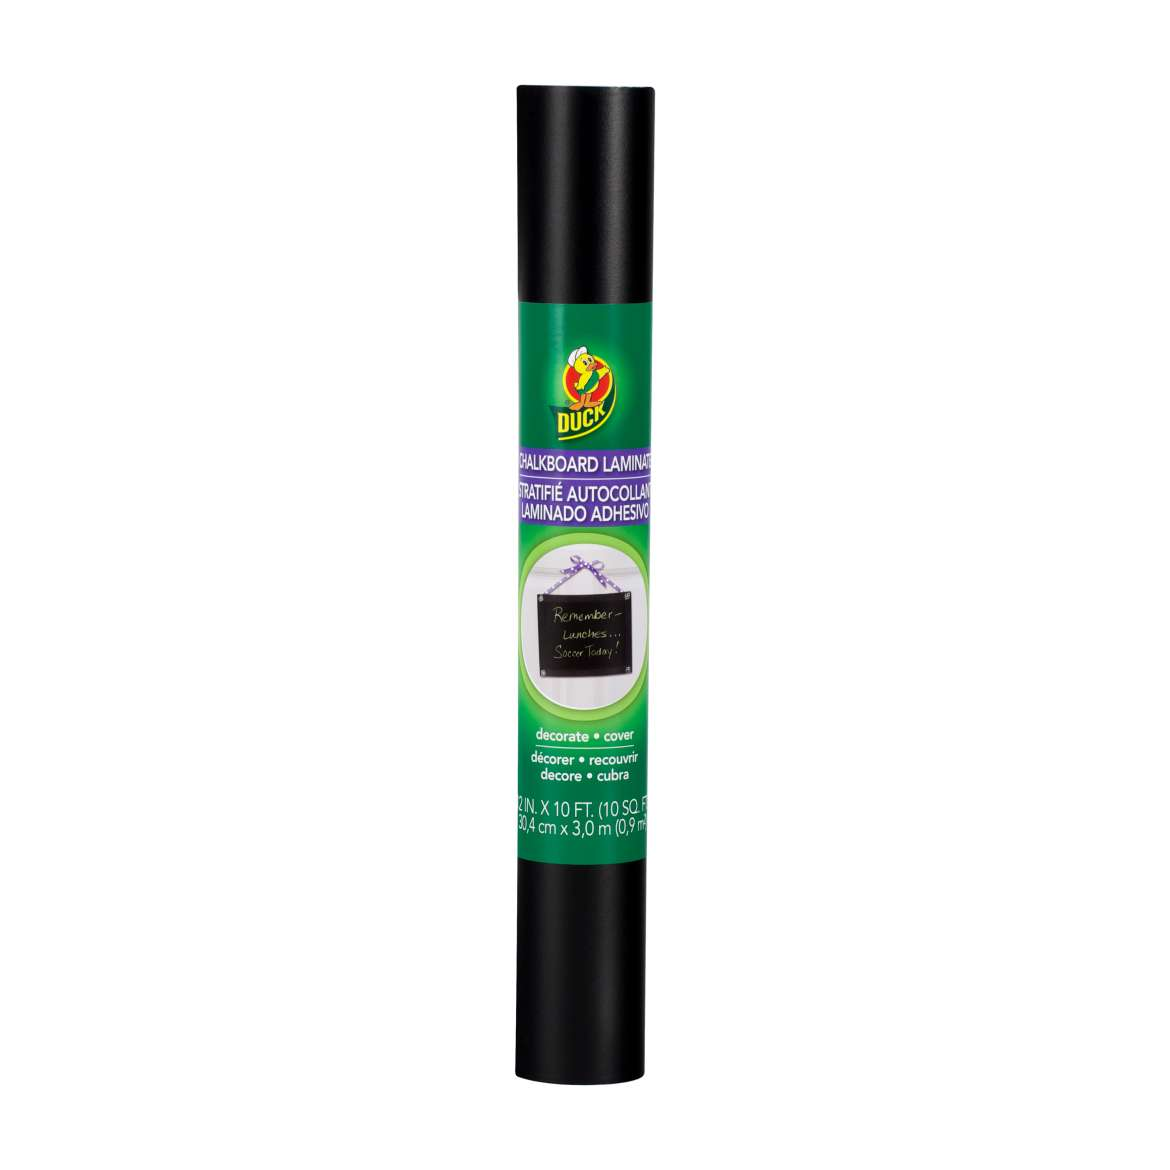 Duck® Brand Deco Adhesive Laminate - Chalkboard, 12 in. x 10 ft. Image